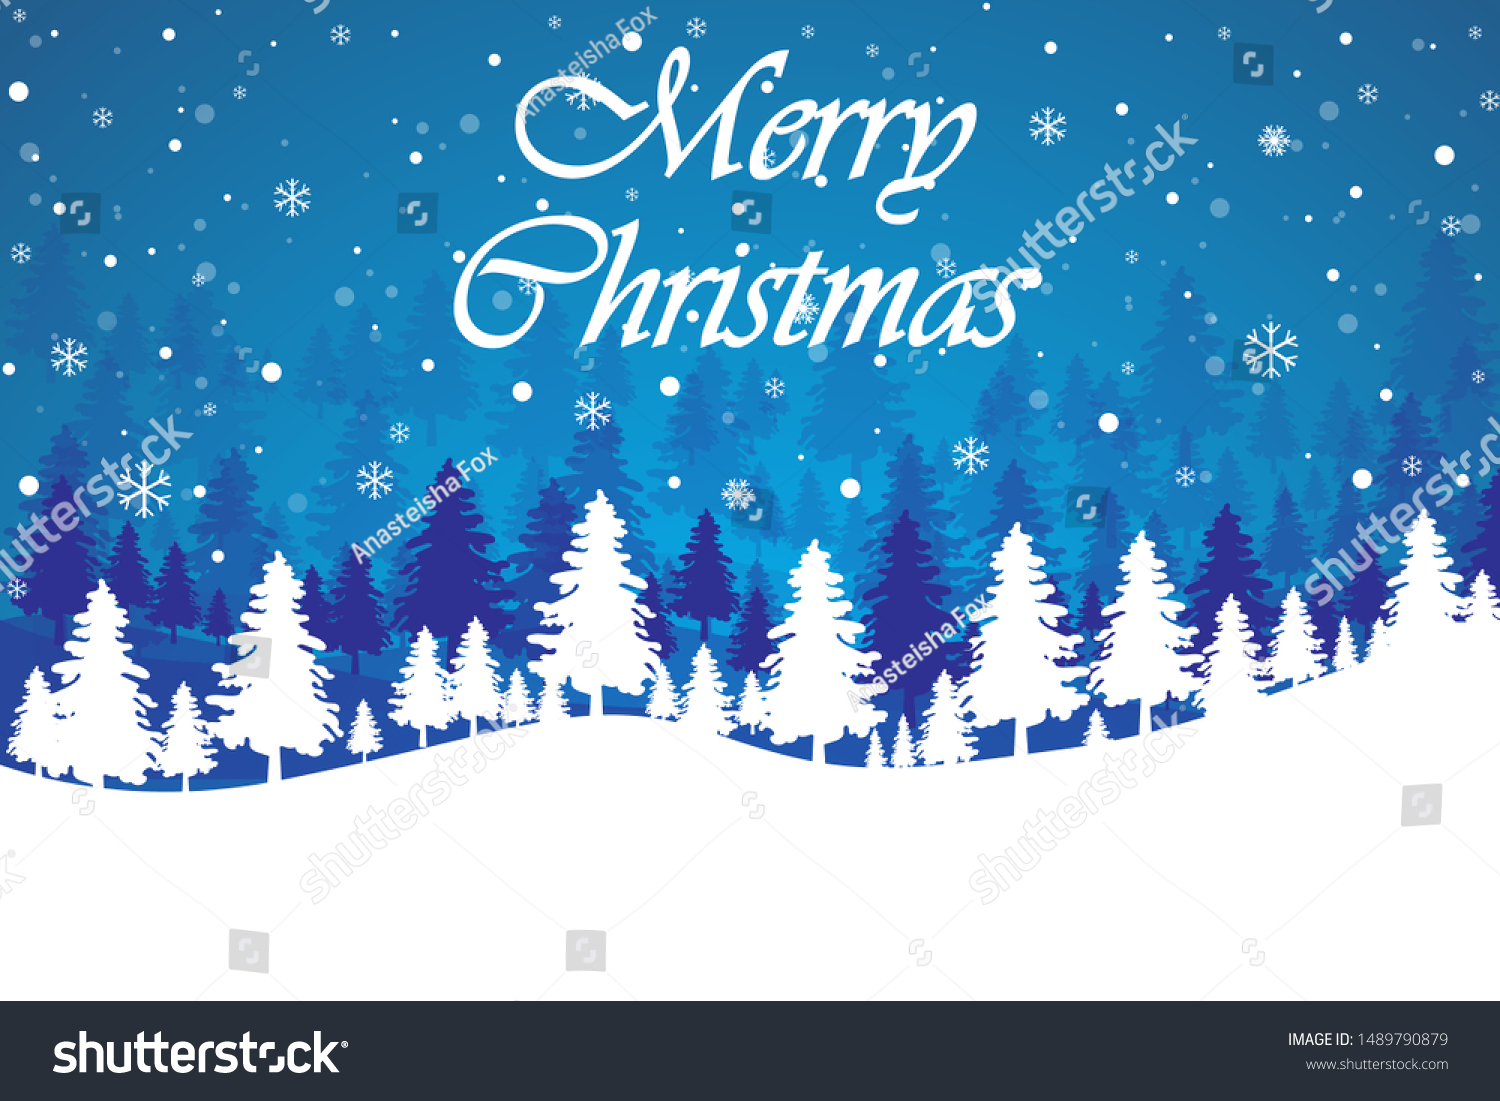 stock vector merry christmas landscape winter abstract blue background christmas tree snowflakes snow 1489790879